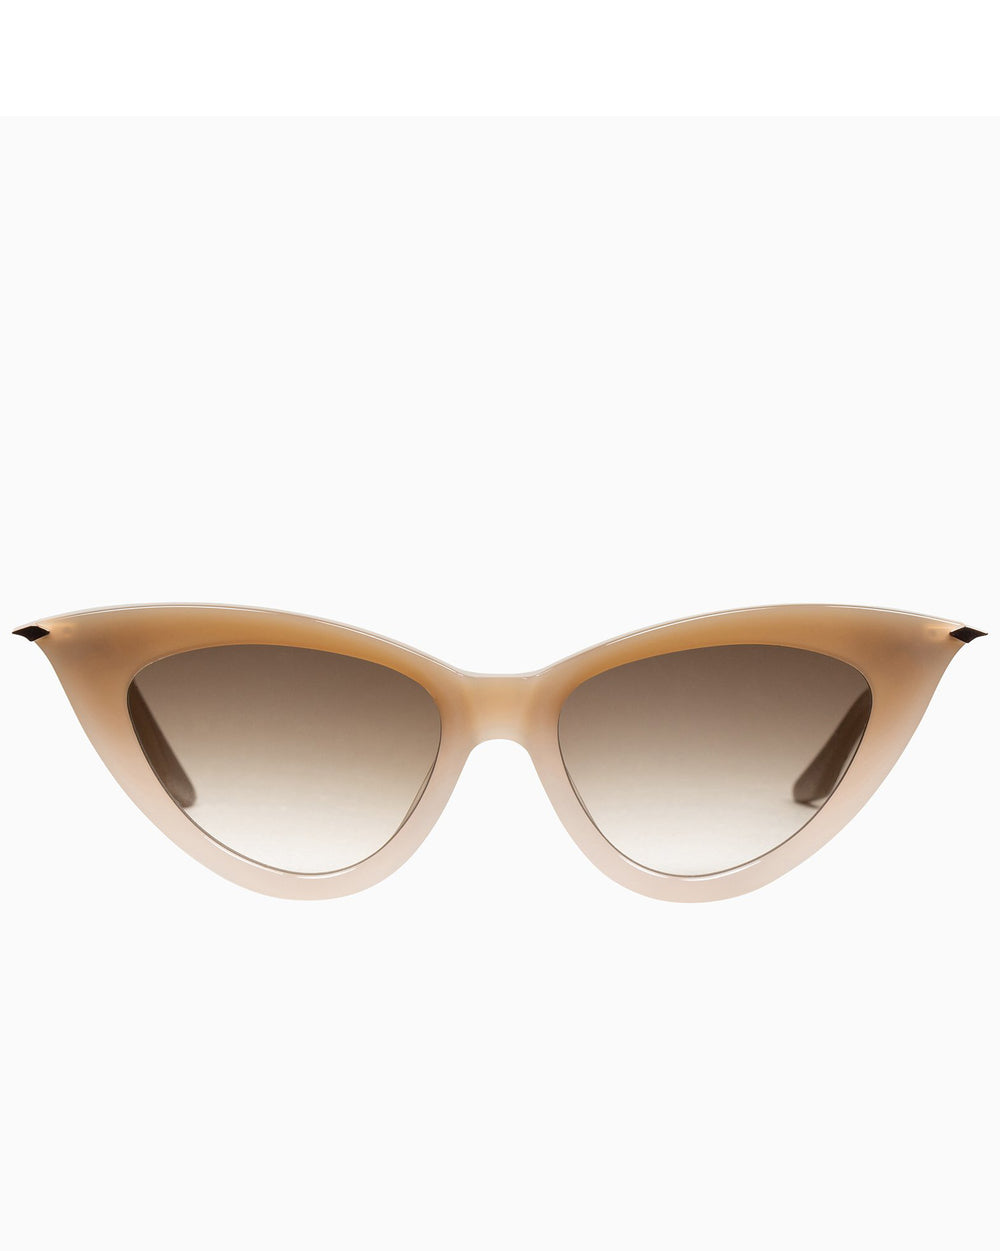 Valley Dagger - Toffee Fade to Ivory w. Rose Gold Metal Trim / Brown Gradient Lens